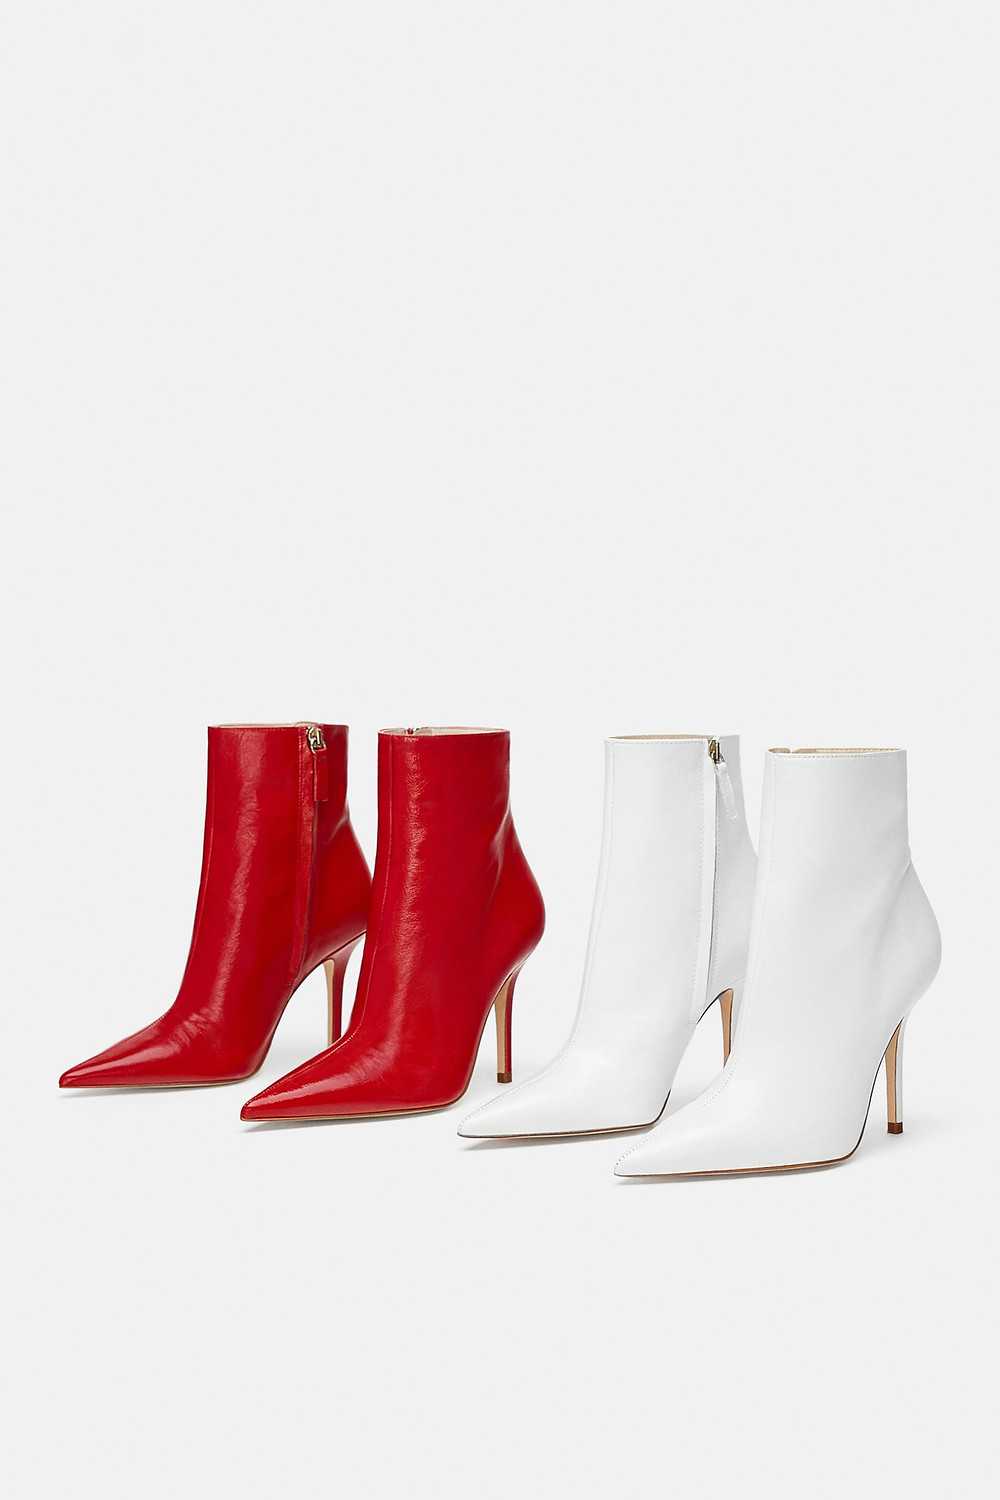 Zara Leather Stiletto Heeled Ankle Boots Red White